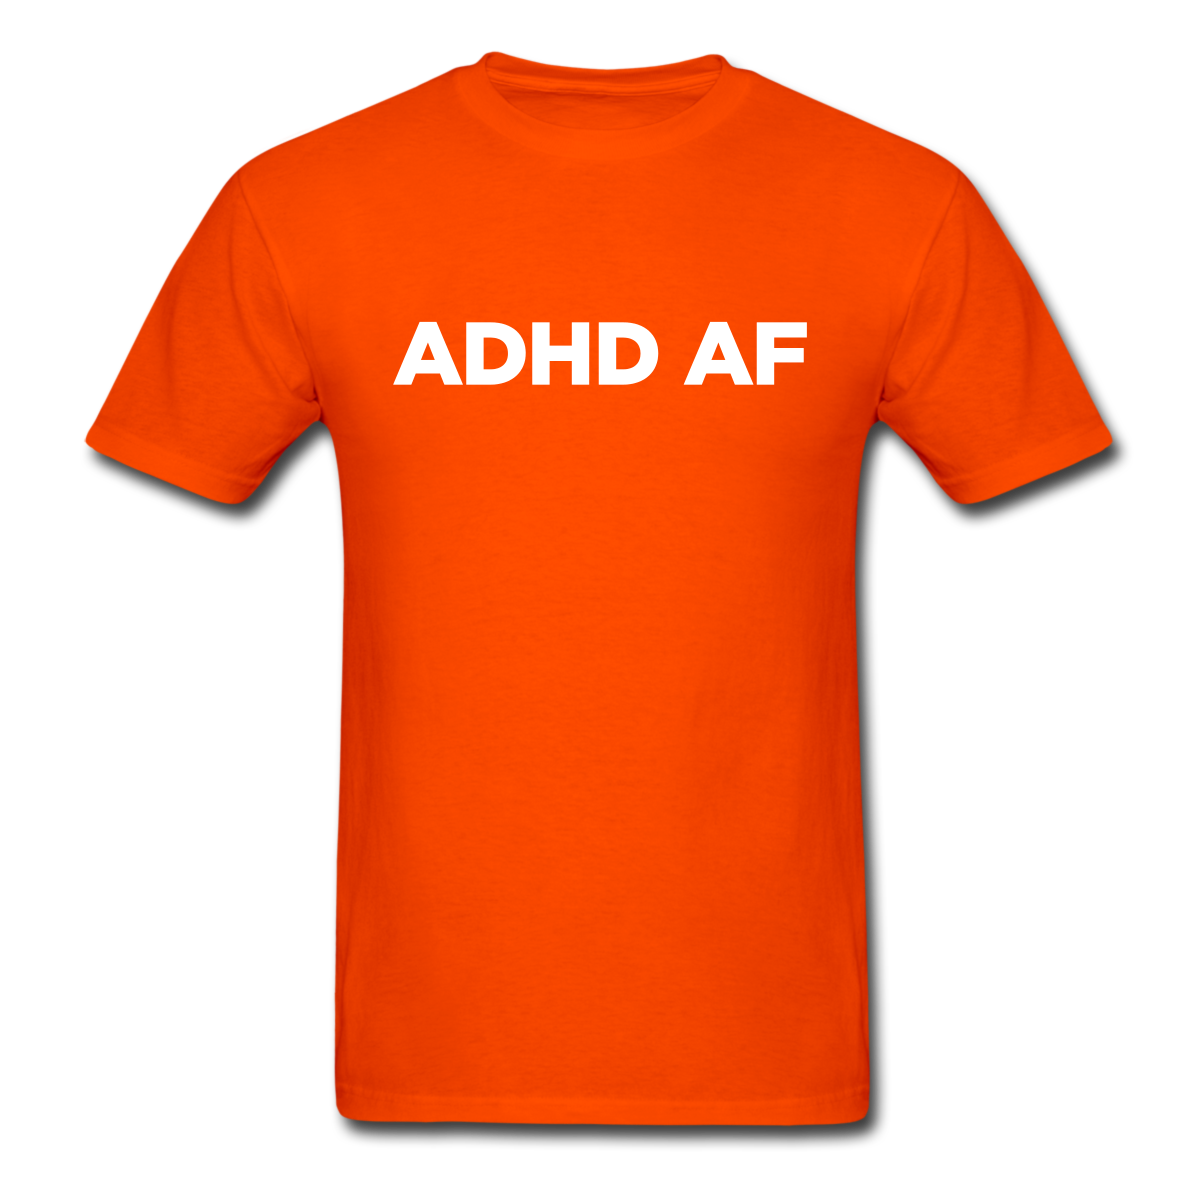 Adhd af mens t shirt with funny attention deficit disorder quote adhd af mens t shirt with funny attention deficit disorder quote mens t shirt fandeluxe Images